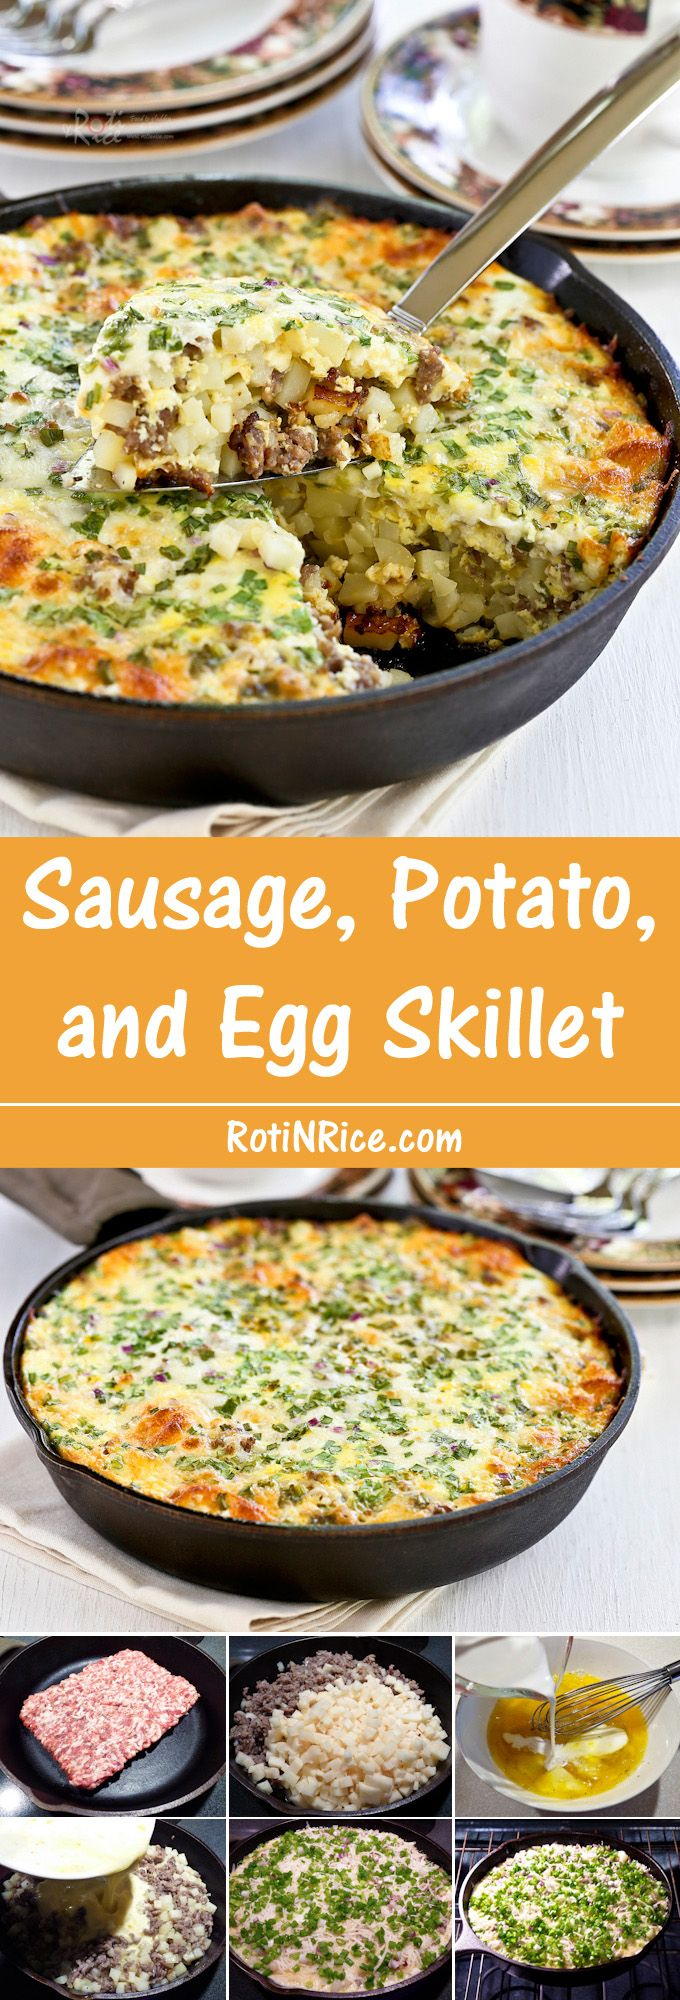 Sausage, Potato, and Egg Skillet